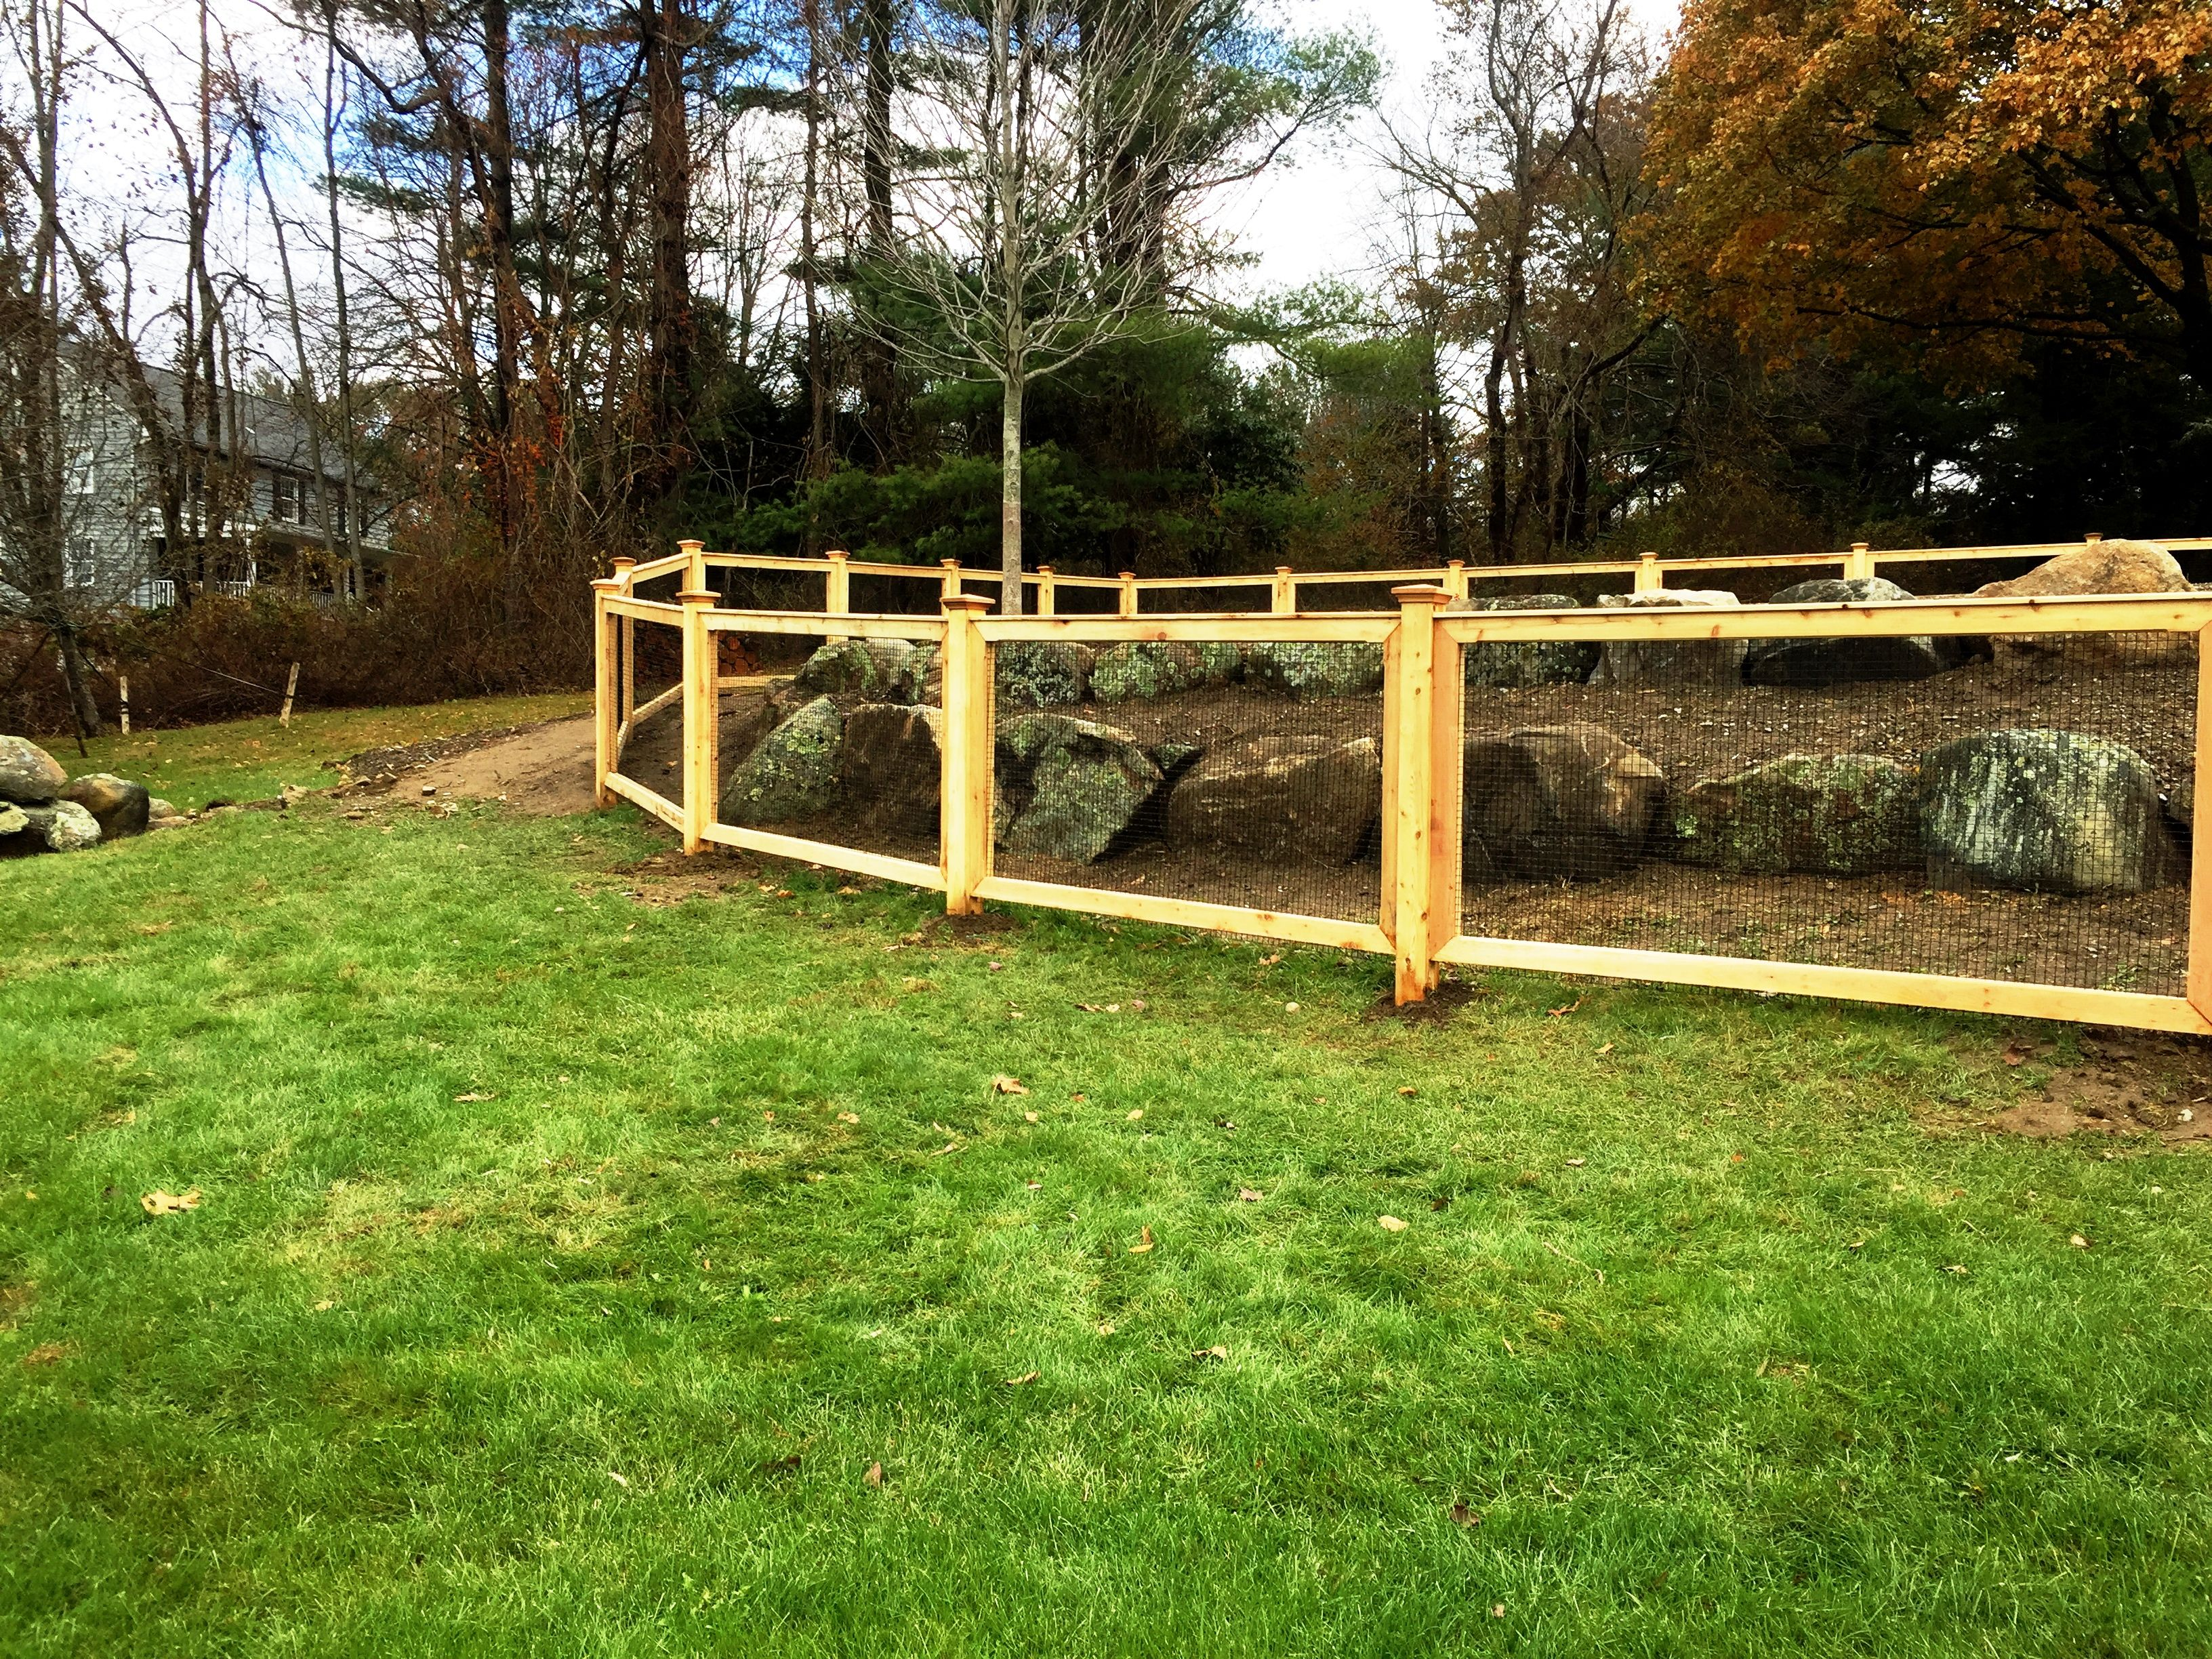 Custom Cedar Deer Fencing with Welded Wire Pool Fence | DEER FENCE ...